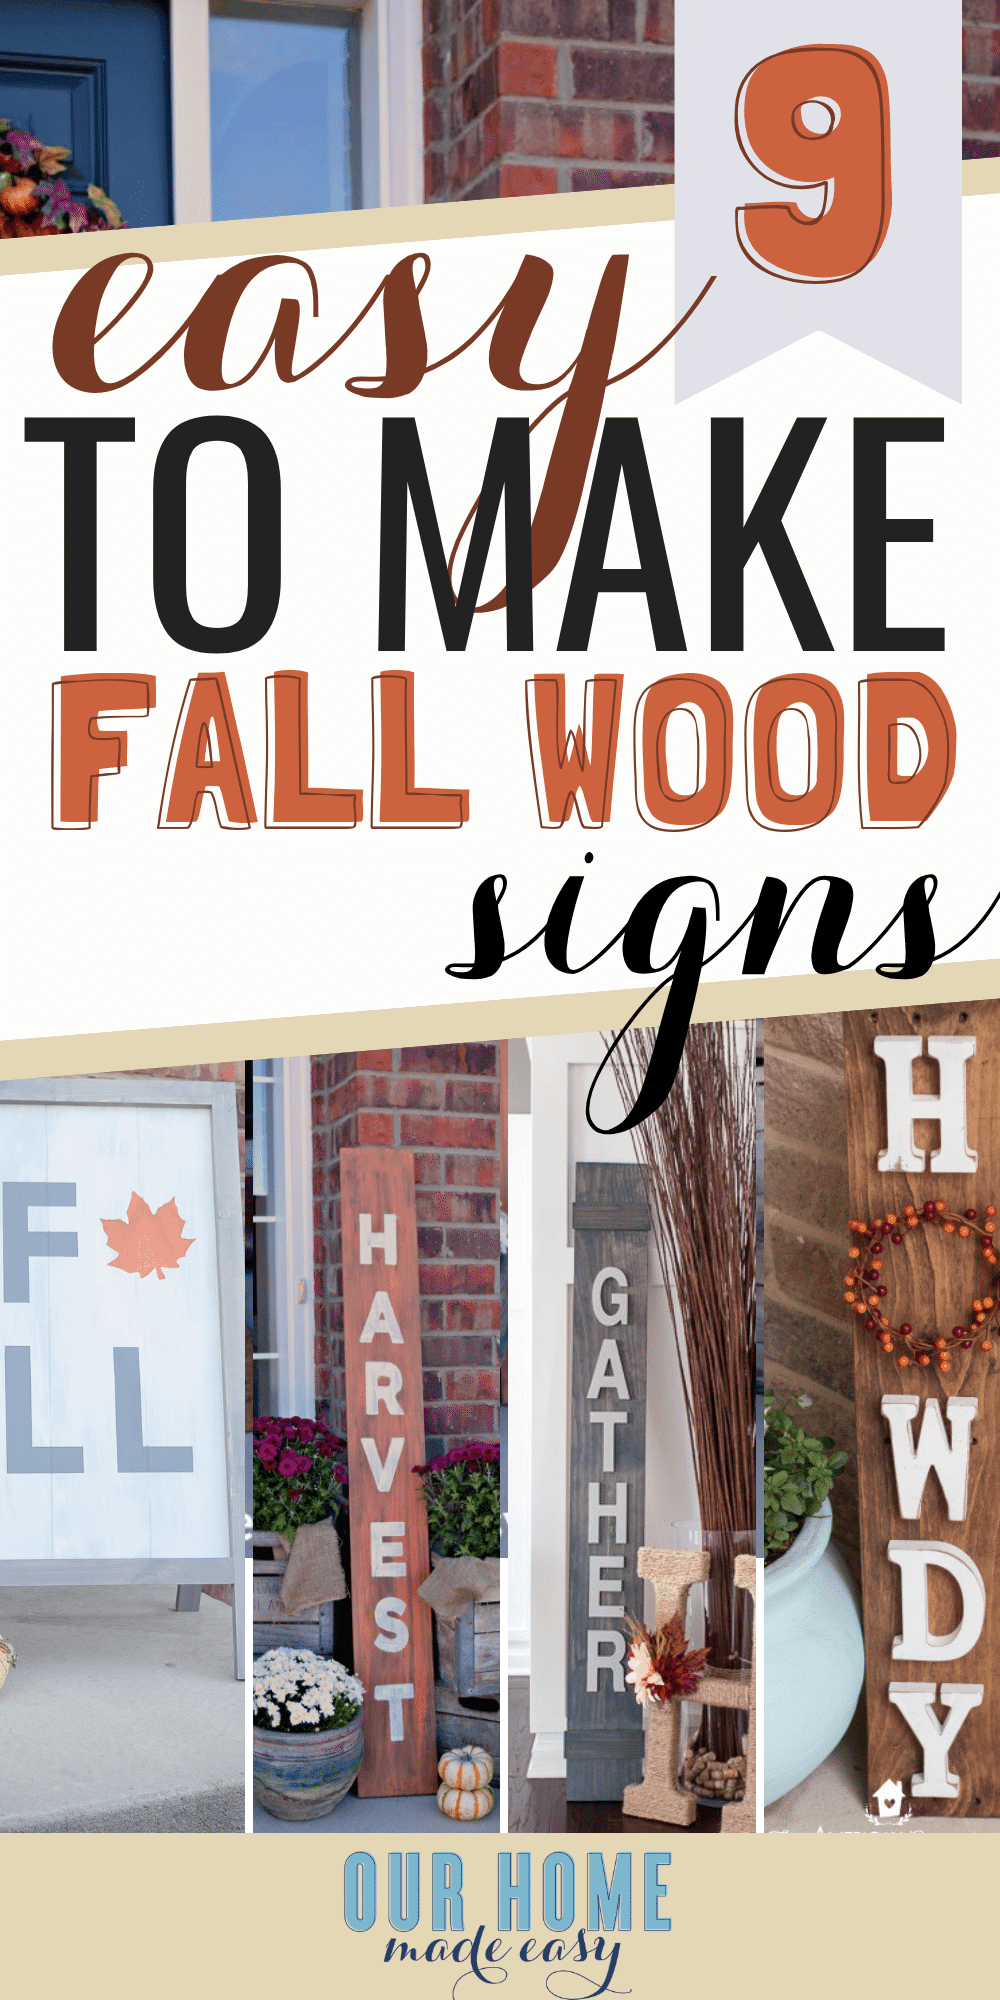 Make one of these easy DIY fall wood signs this weekend! Not only are they adorable, but they are the best way to add fall decor on a budget! Click to see them! #DIY #DIYHomeDecor #farmhousestyle